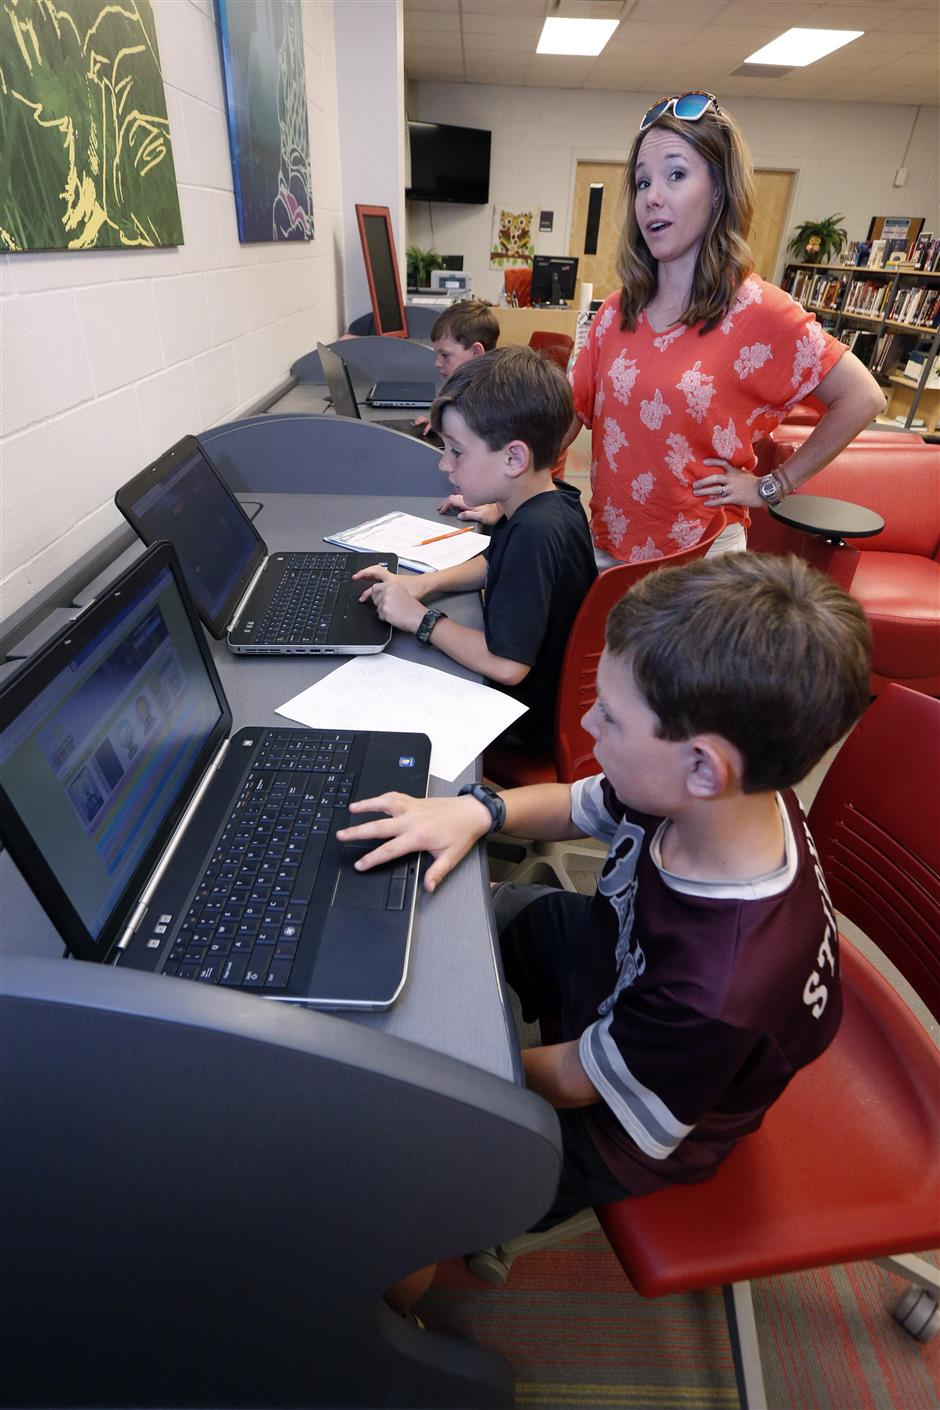 ADVANCE FOR RELEASE JUNE 10, 2019 AND THEREAFTER -  In this May 8, 2019, photograph, Sharon Stidham, standing, talks to her sons Graham, center, and Miles, front, as they use the laptops at East Webster High School to do homework in Maben, Miss. A cellphone tower is visible through the trees from their home on a hilltop near Maben, but the internet signal does not reach their house, despite building a special antenna on top of a nearby family cabin. (AP Photo/Rogelio V. Solis)